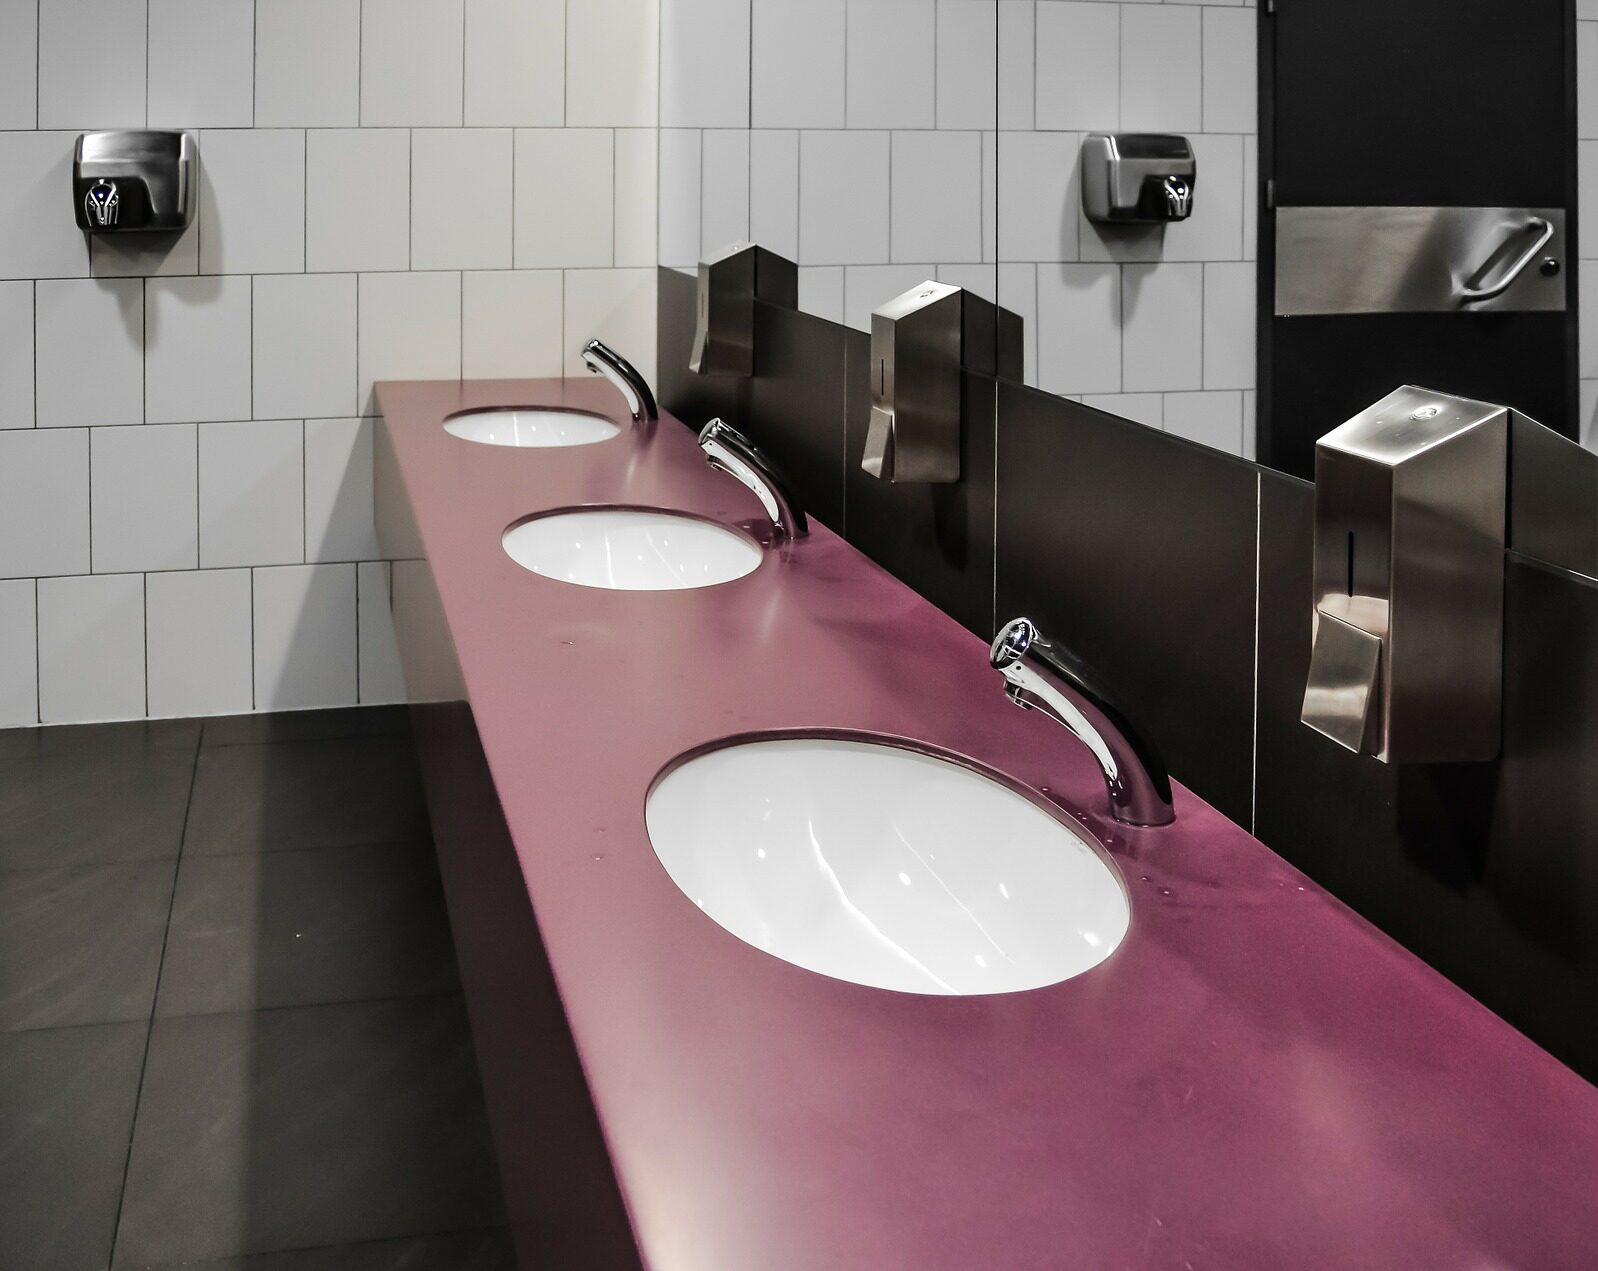 A black, red and white commercial bathroom with 3 sinks, mirror and hand dryer on the One Stop Plumbing commercial Plumbing page